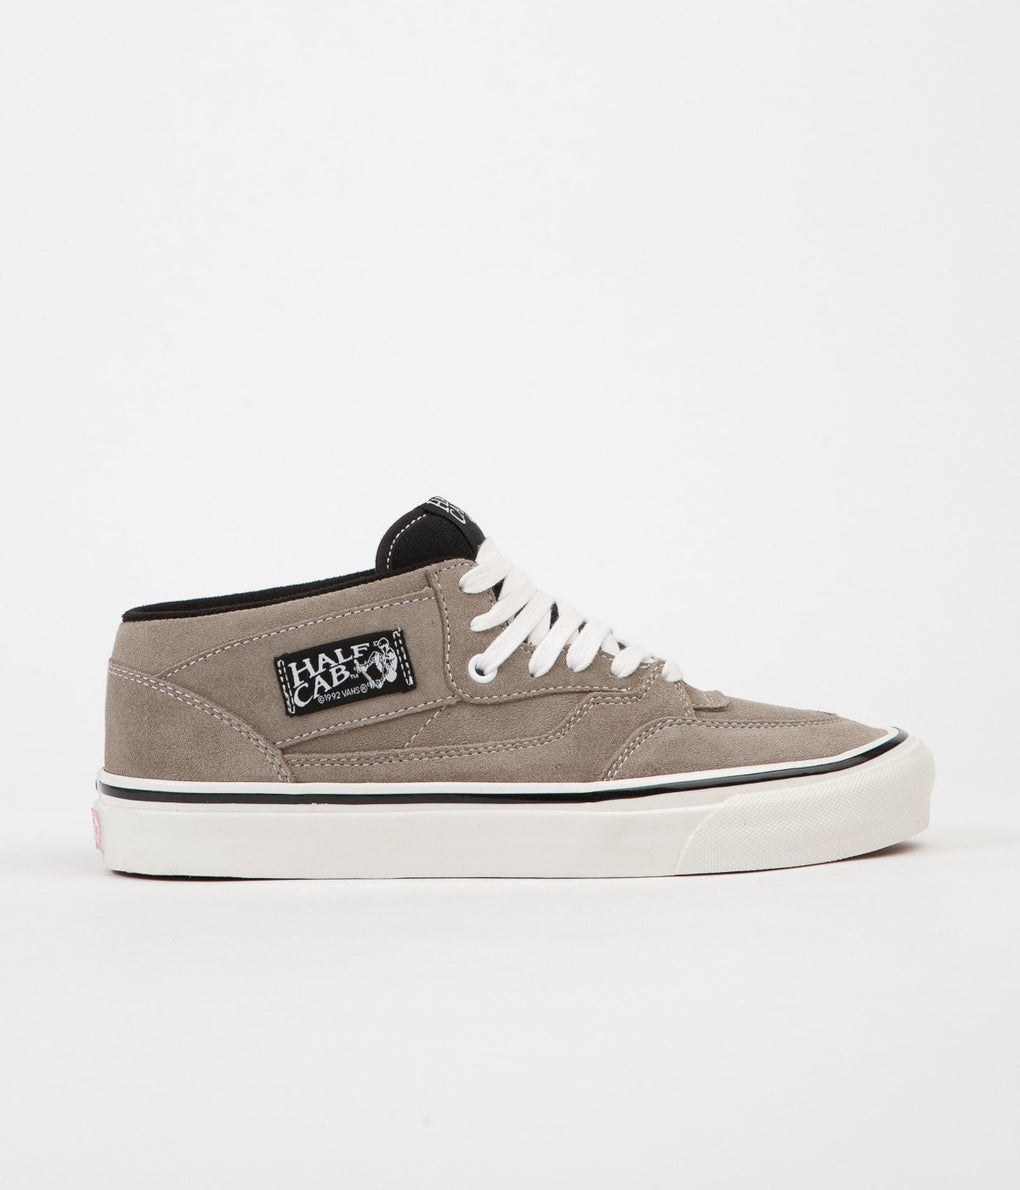 Vans Half Cab 33 DX Anaheim Factory Shoes - OG Birch